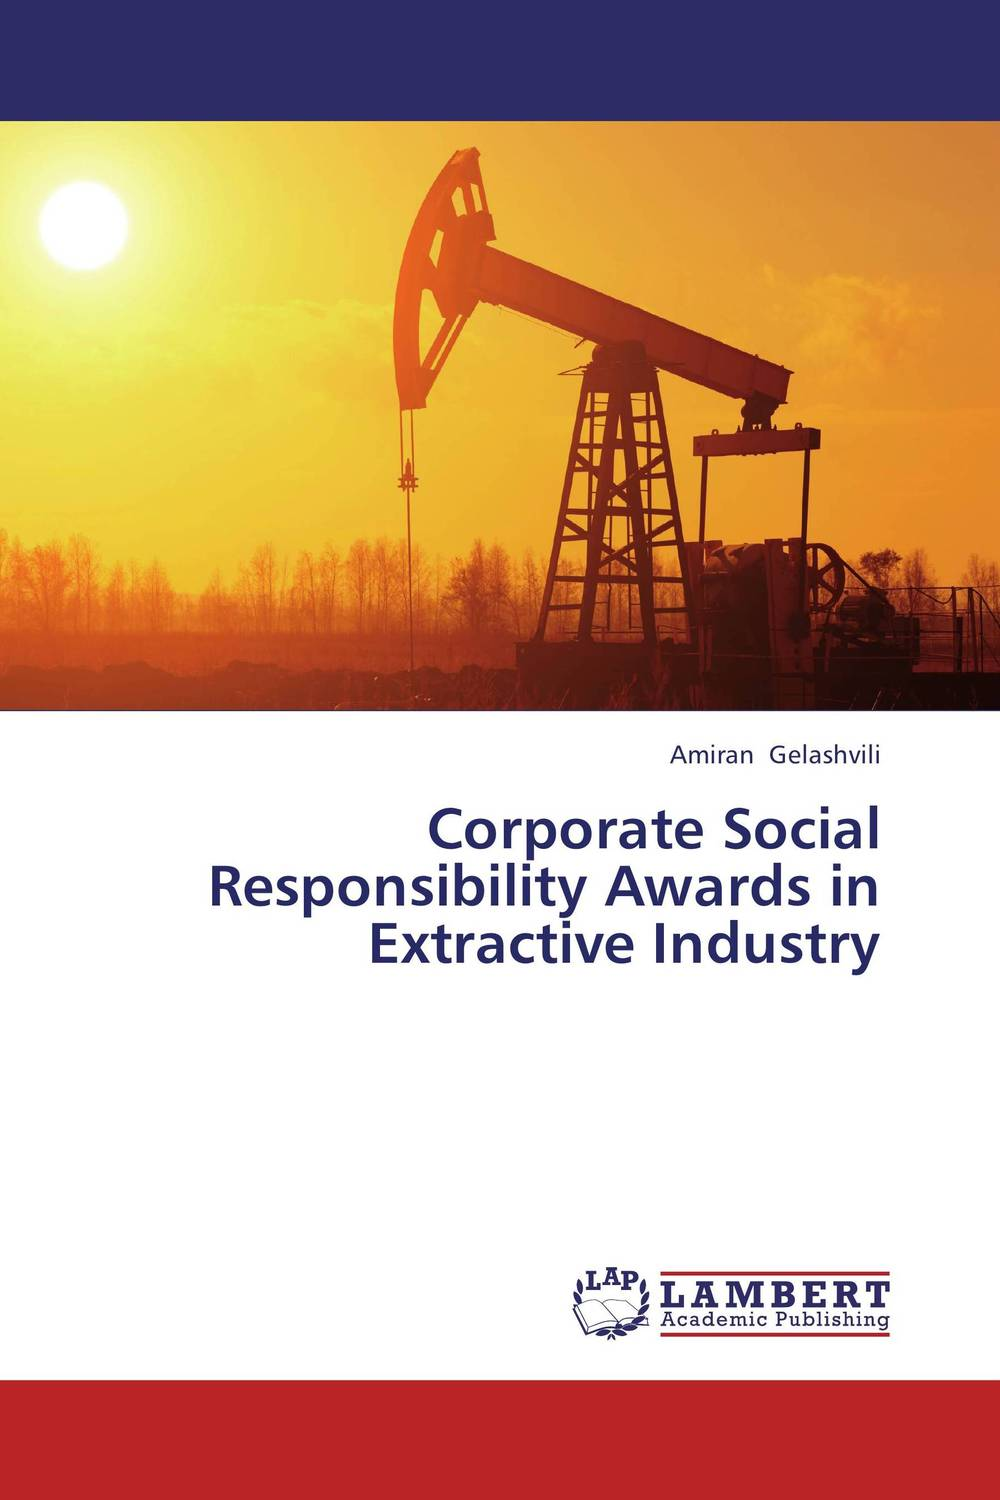 Corporate Social Responsibility Awards in Extractive Industry dan zheng the impact of employees perception of corporate social responsibility